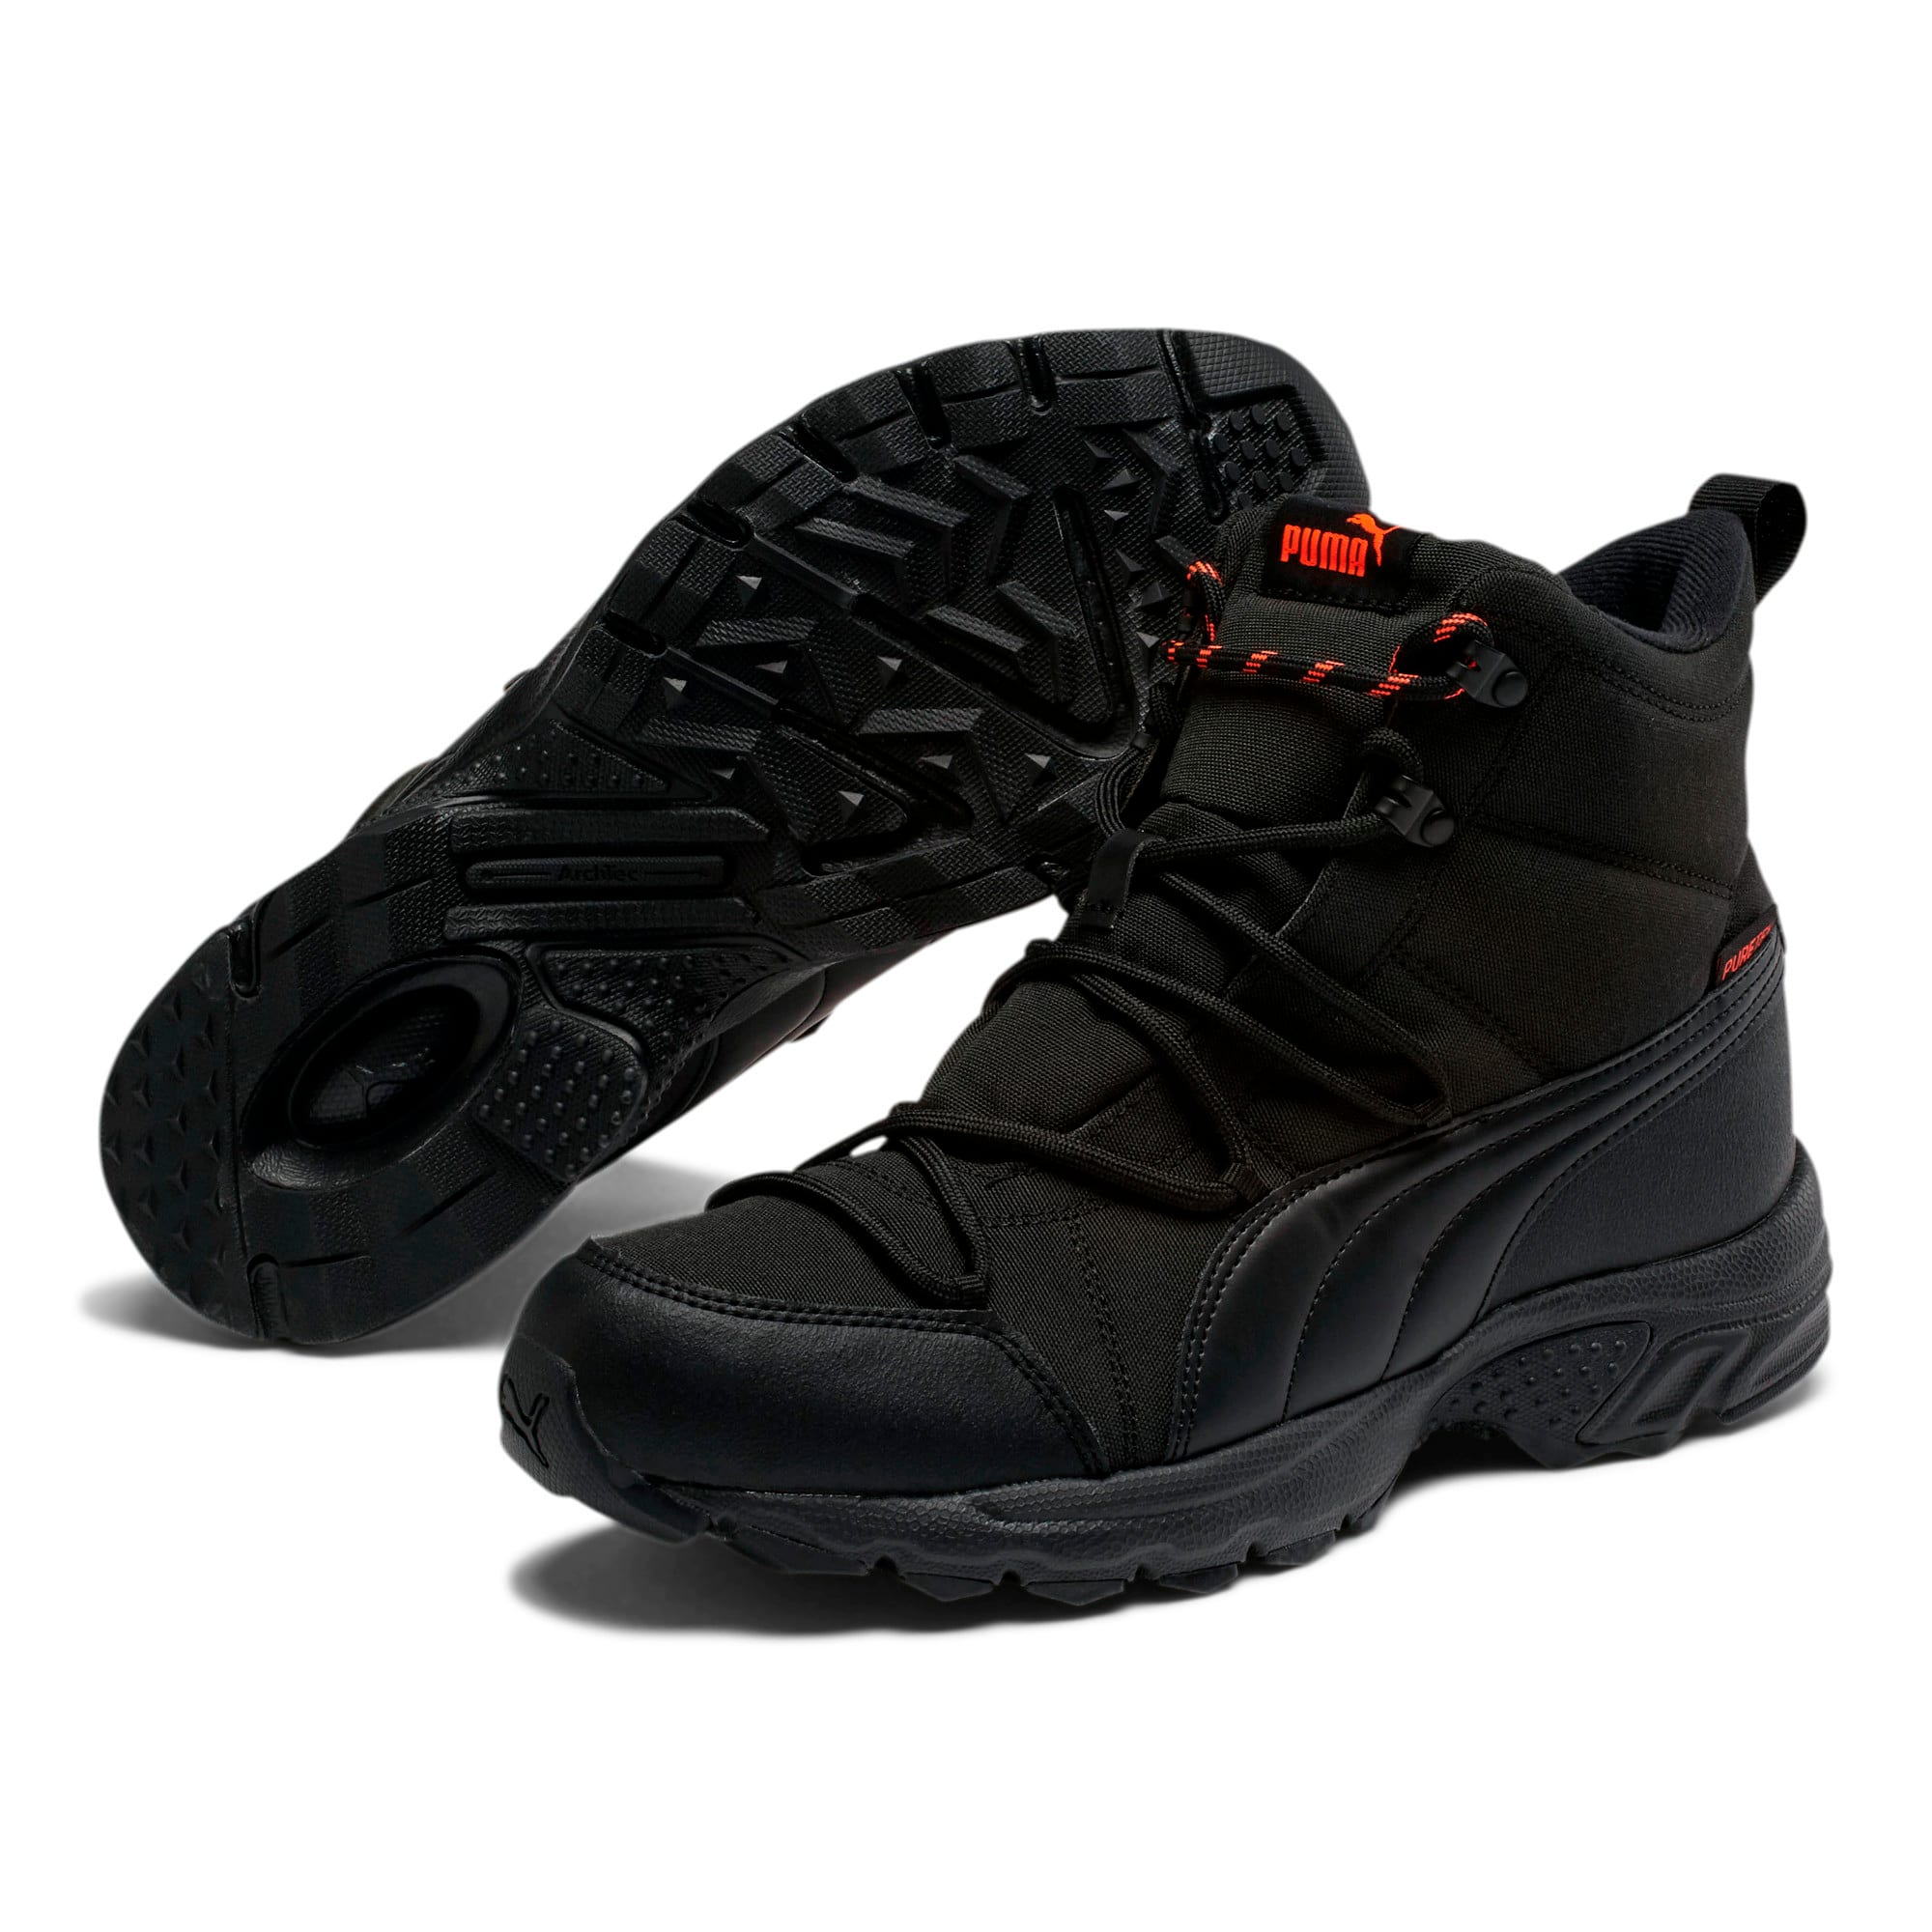 Thumbnail 2 of Axis Trail Winter Boots, Black-Nrgy Red-Whisper White, medium